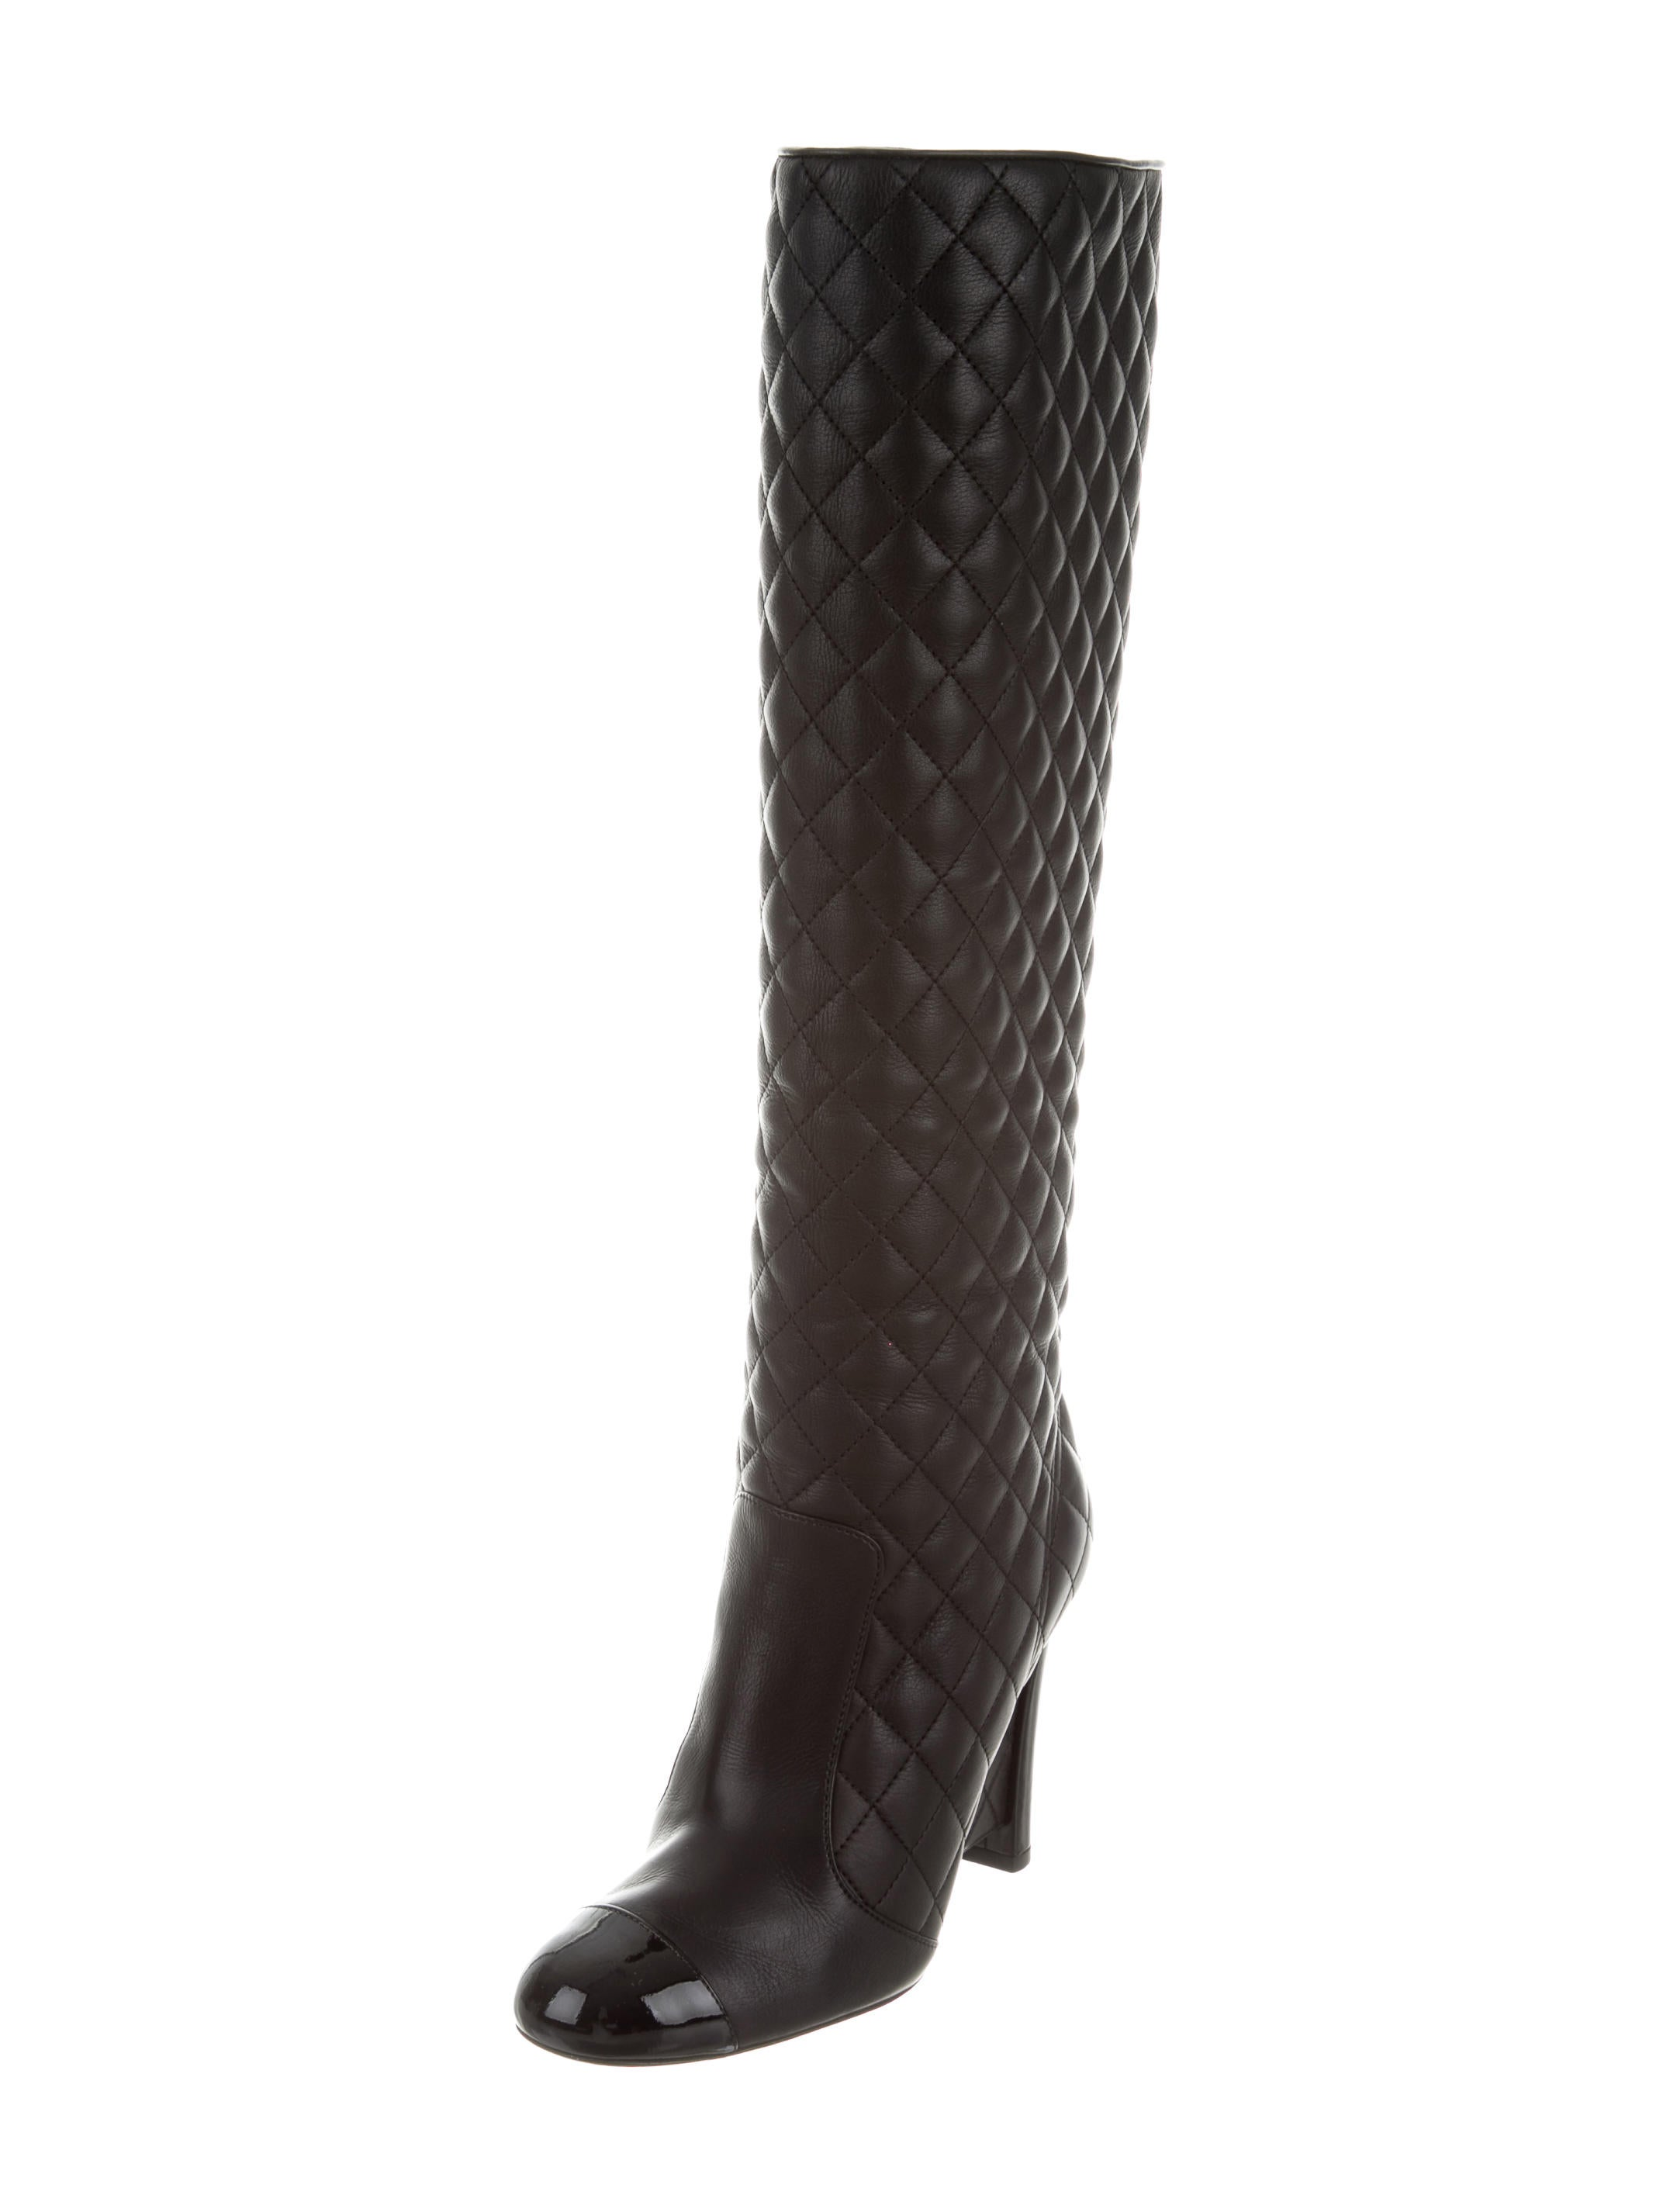 chanel quilted cap toe wedge boots shoes cha155239